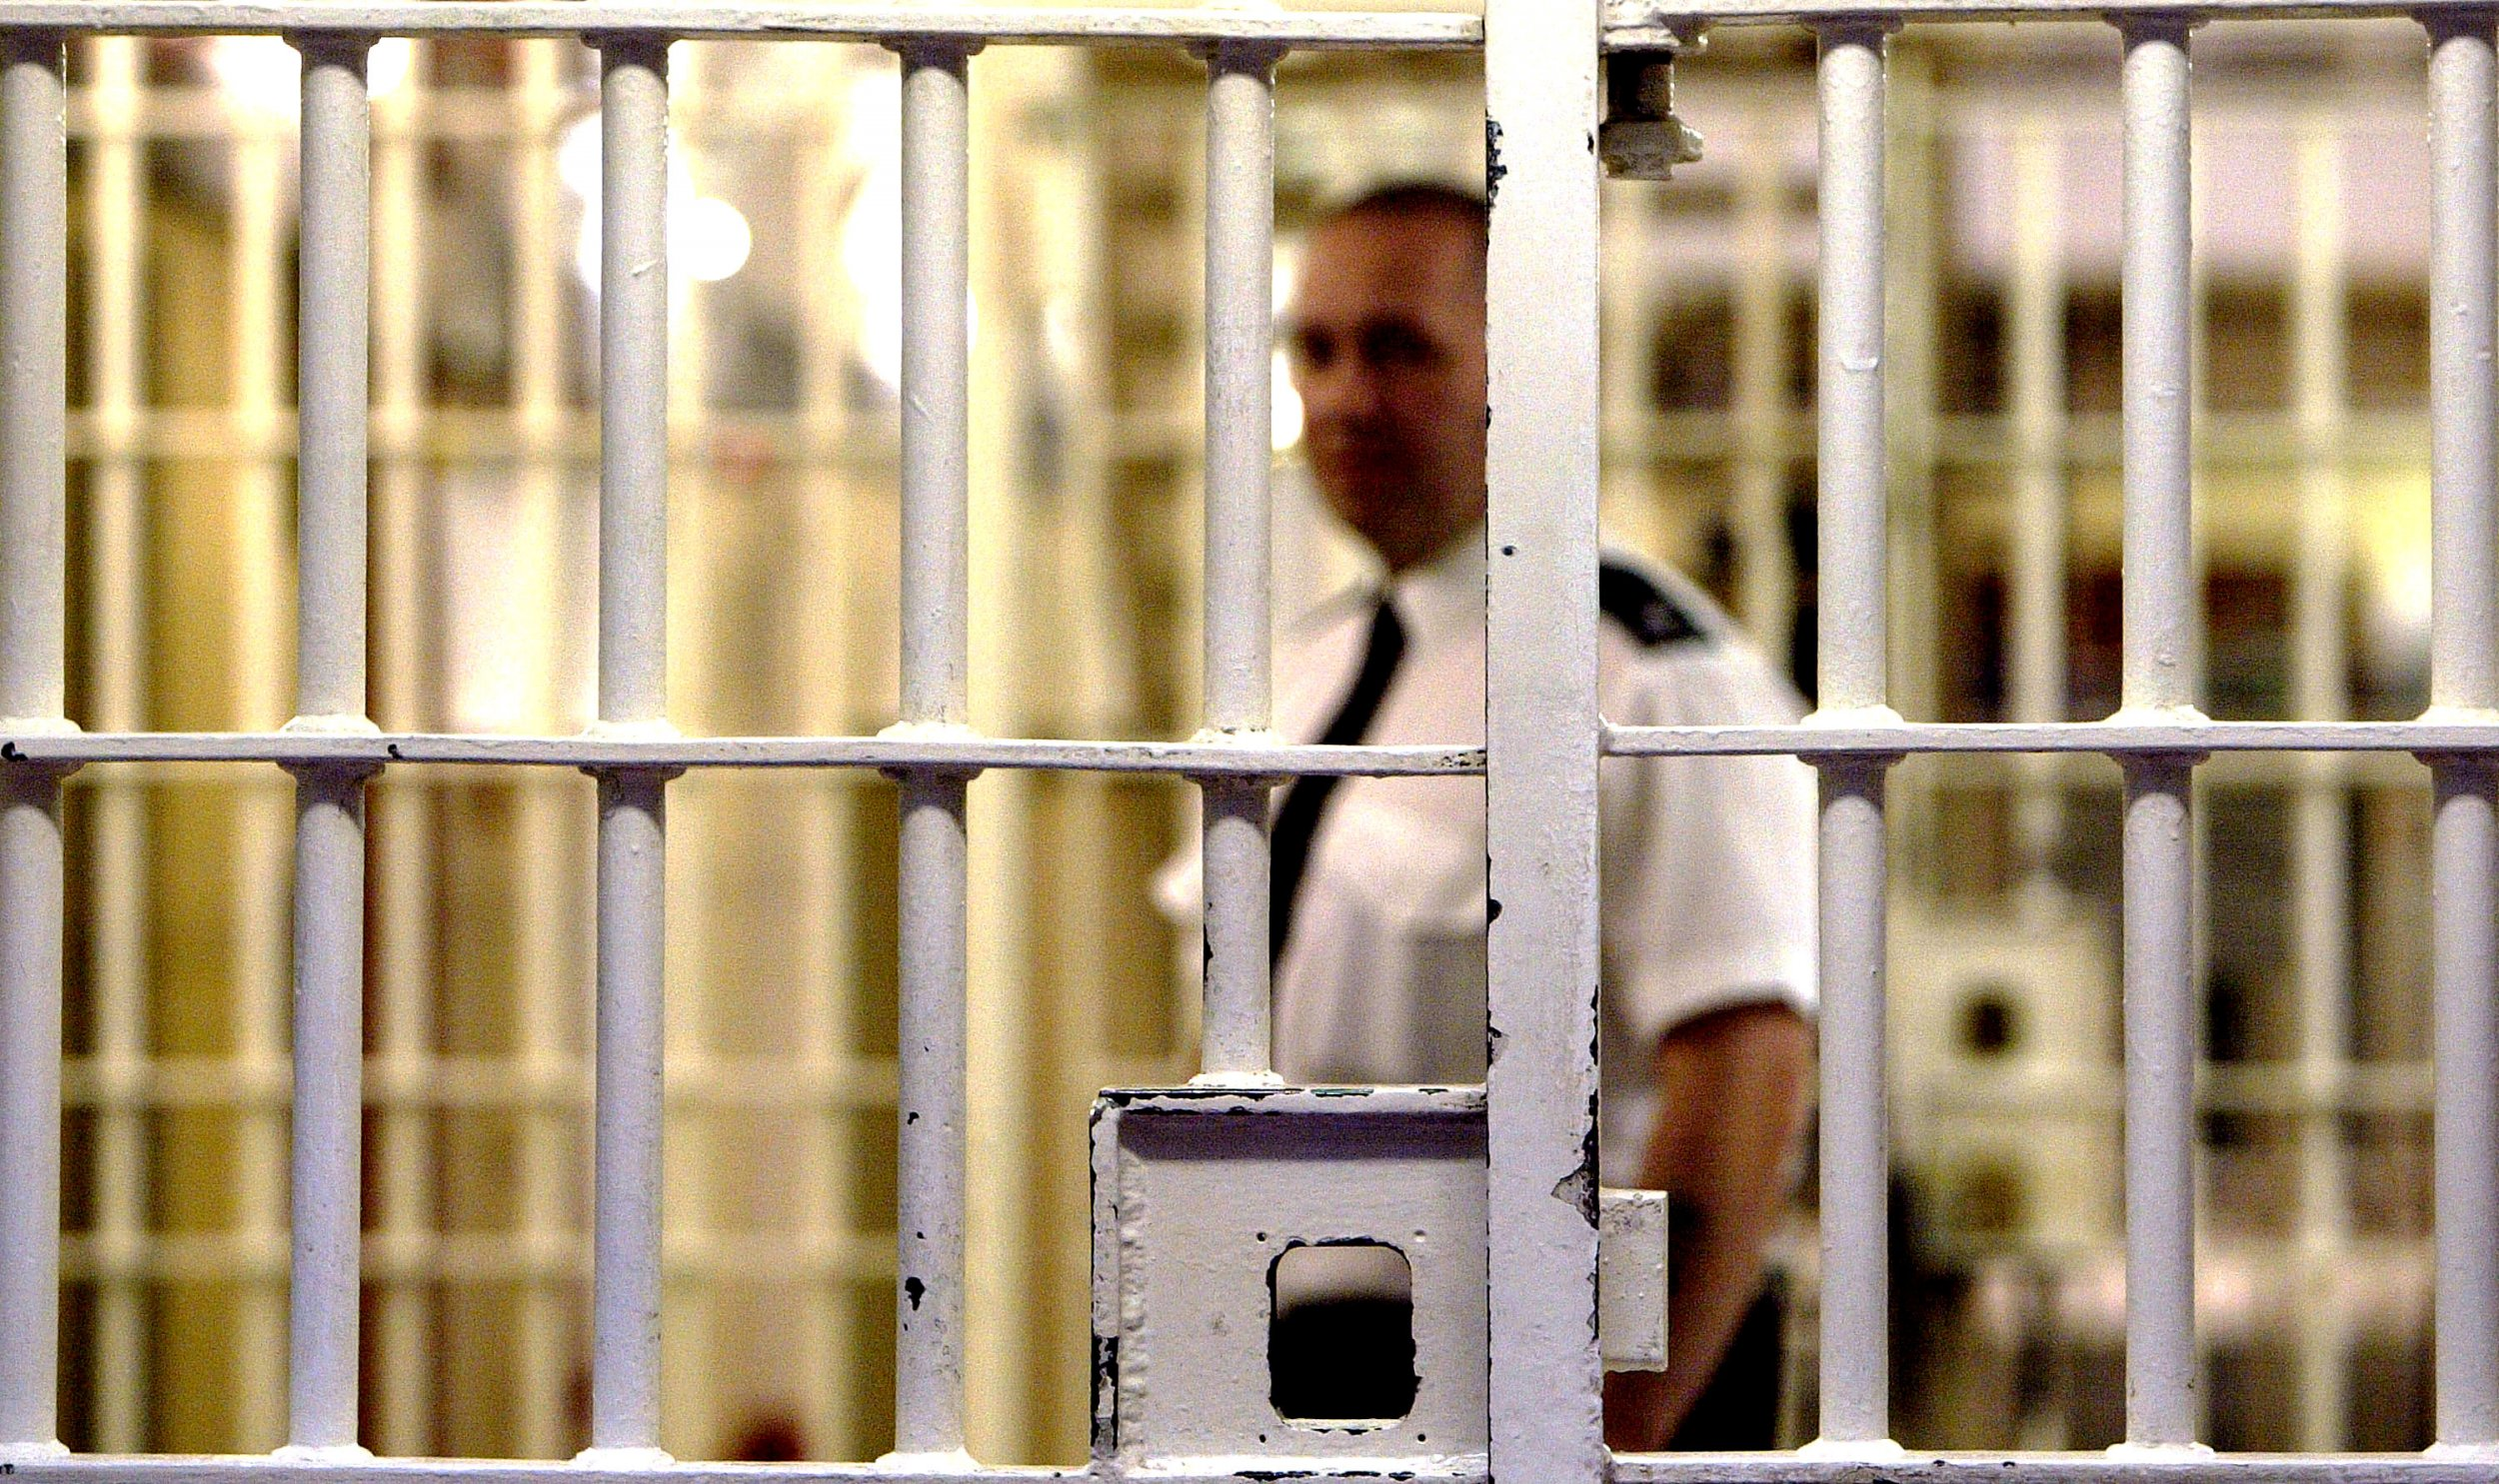 A prison warden stands in front of a cell